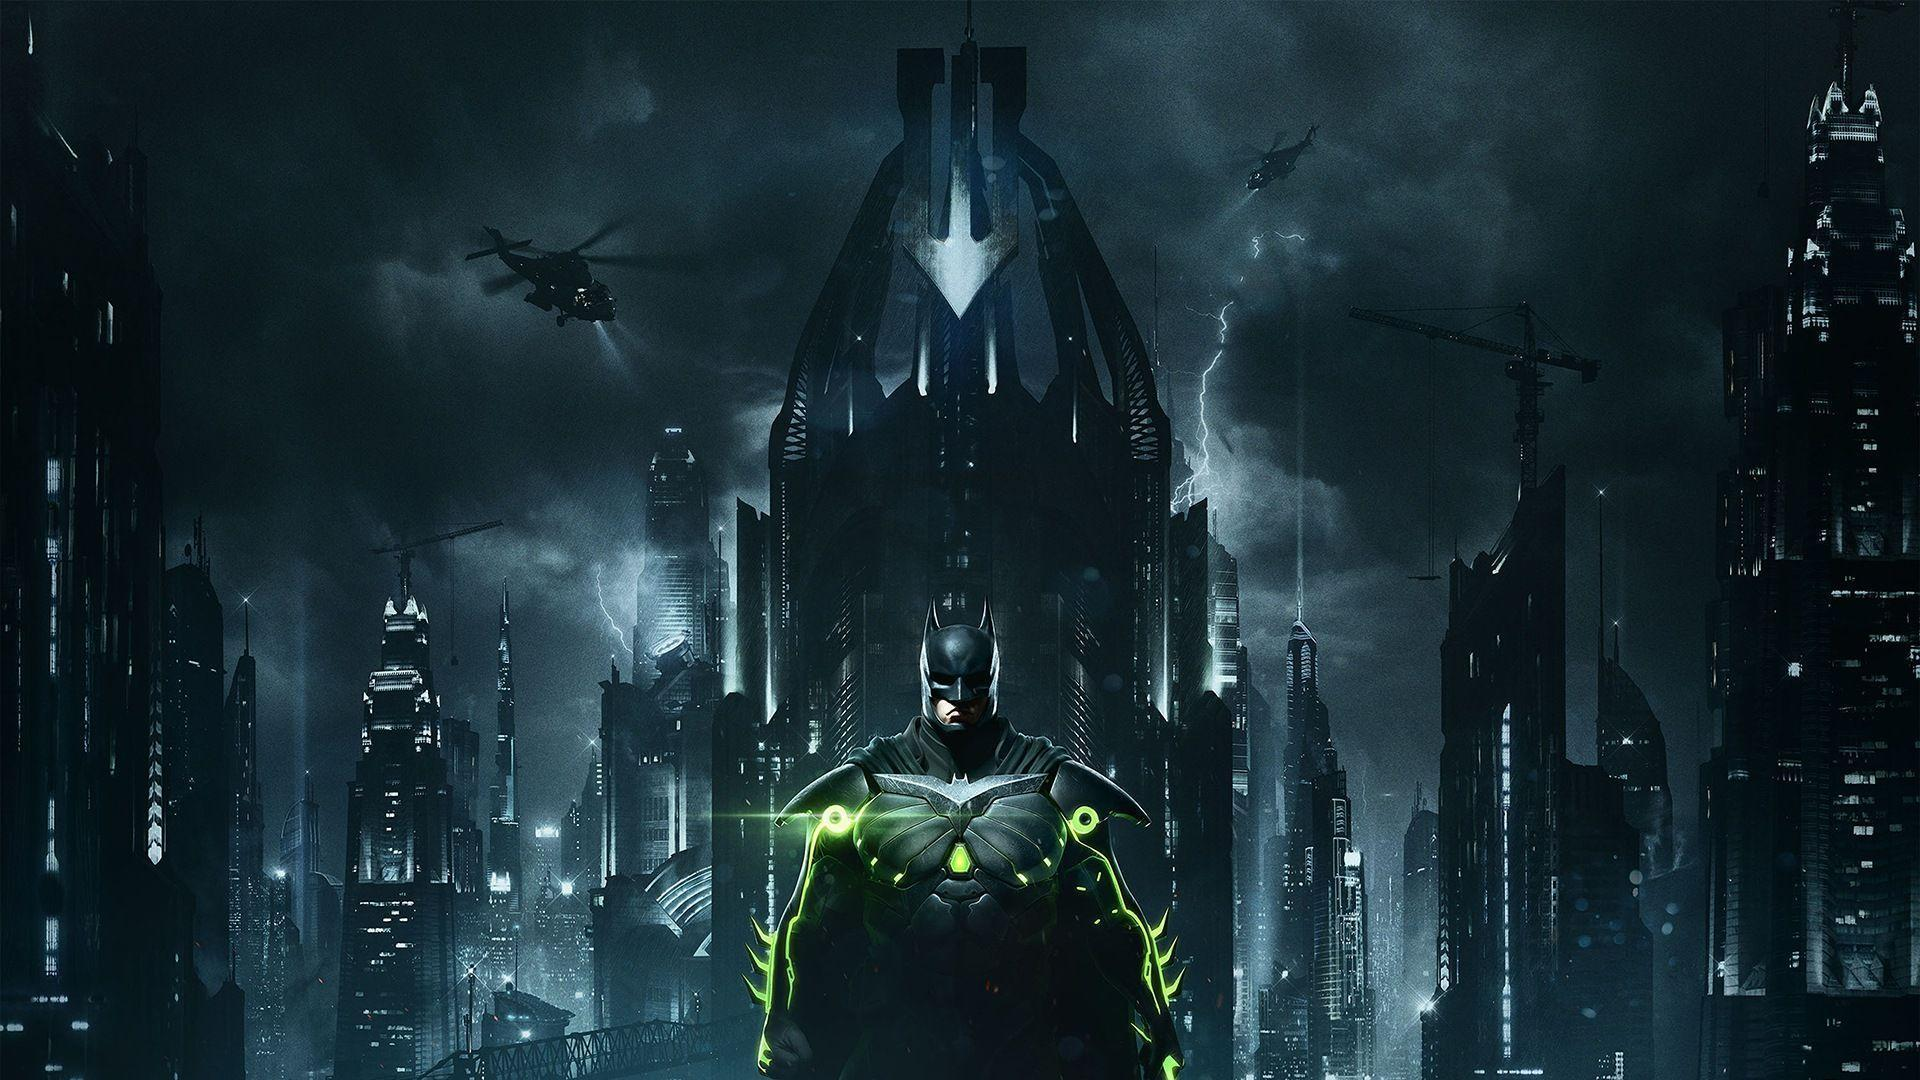 Injustice 2 (Game) | 92 Wallpapers #4